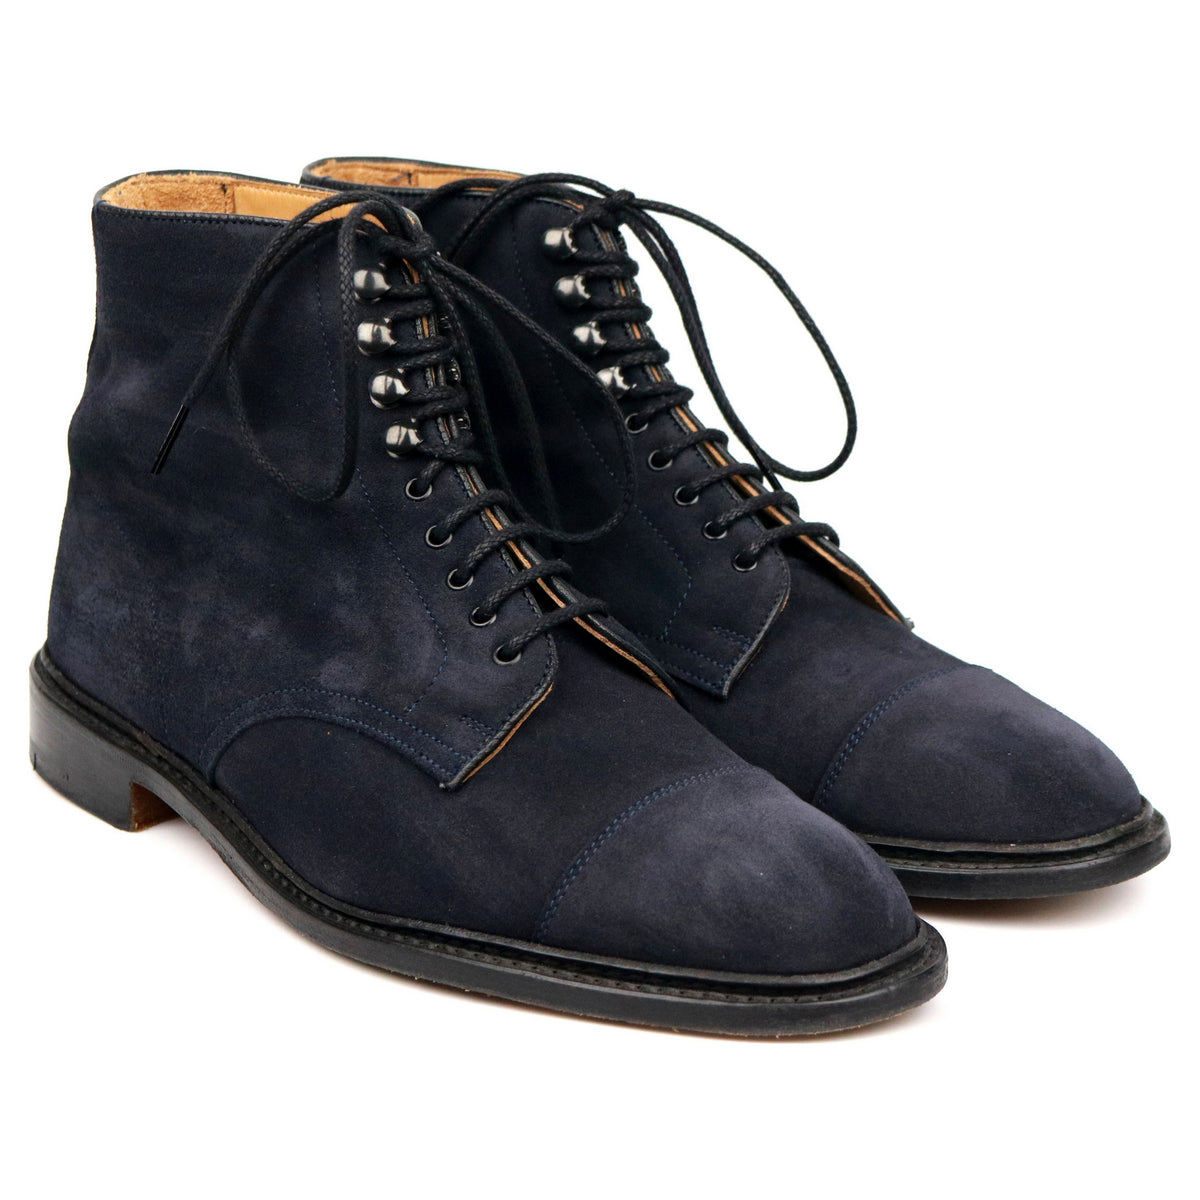 Tricker's 'Scott' Blue Suede Cap Toe Derby Boots UK 9.5